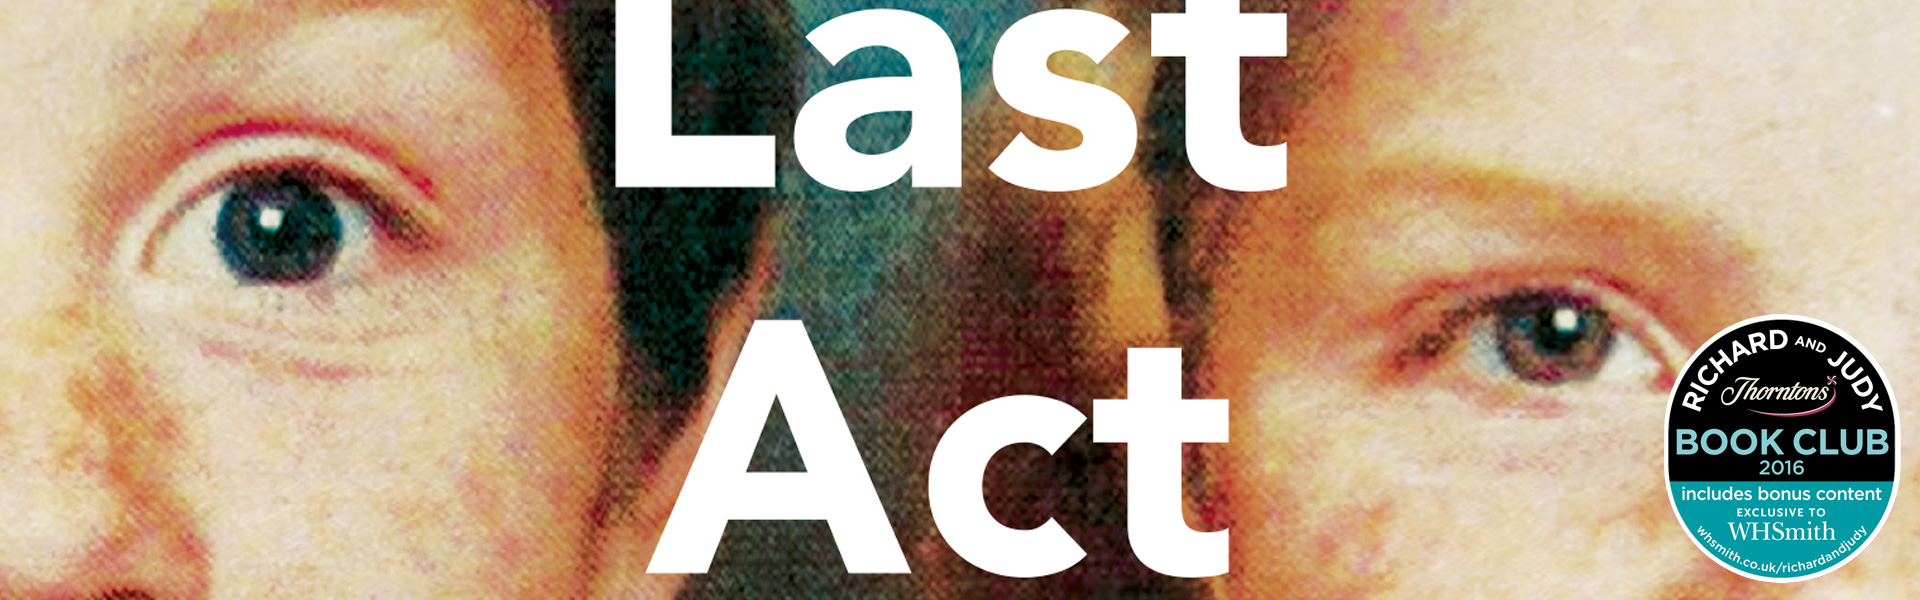 Richard and Judy Review: The Last Act of Love by Cathy Rentzenbrink